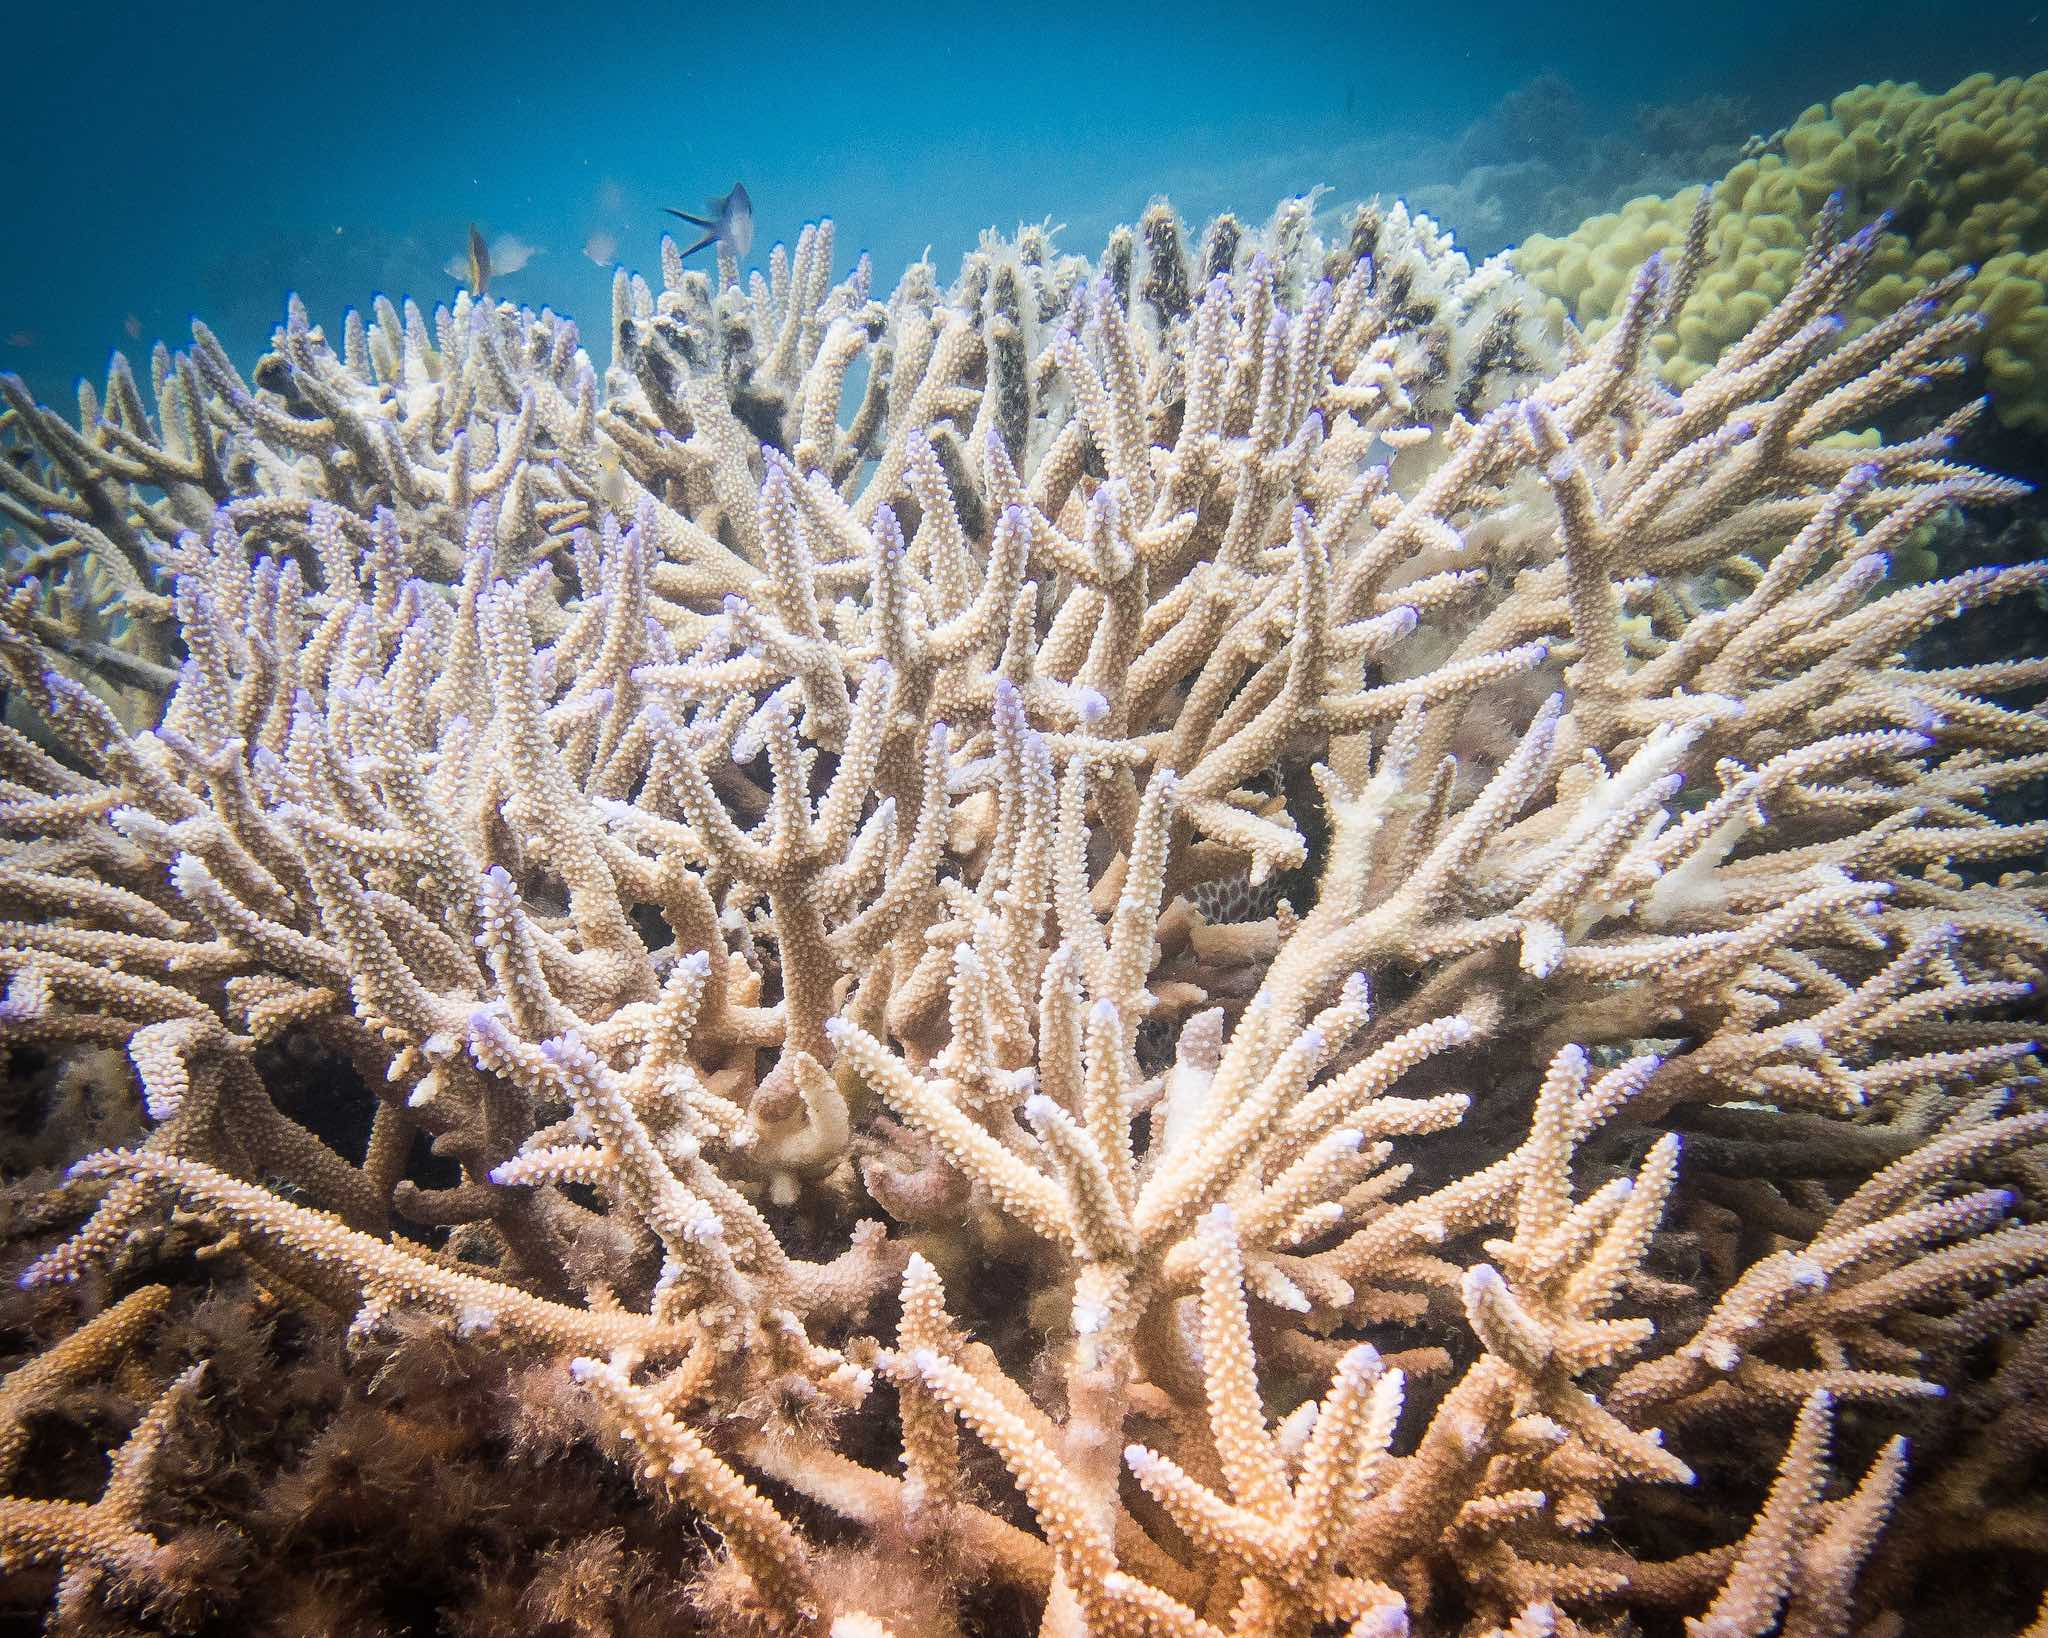 Acropora  corals are key framework corals that form the backbone of the entire reef ecosystem, shown here near Leleuvia Islands, Fiji. Photo: Emily Darling